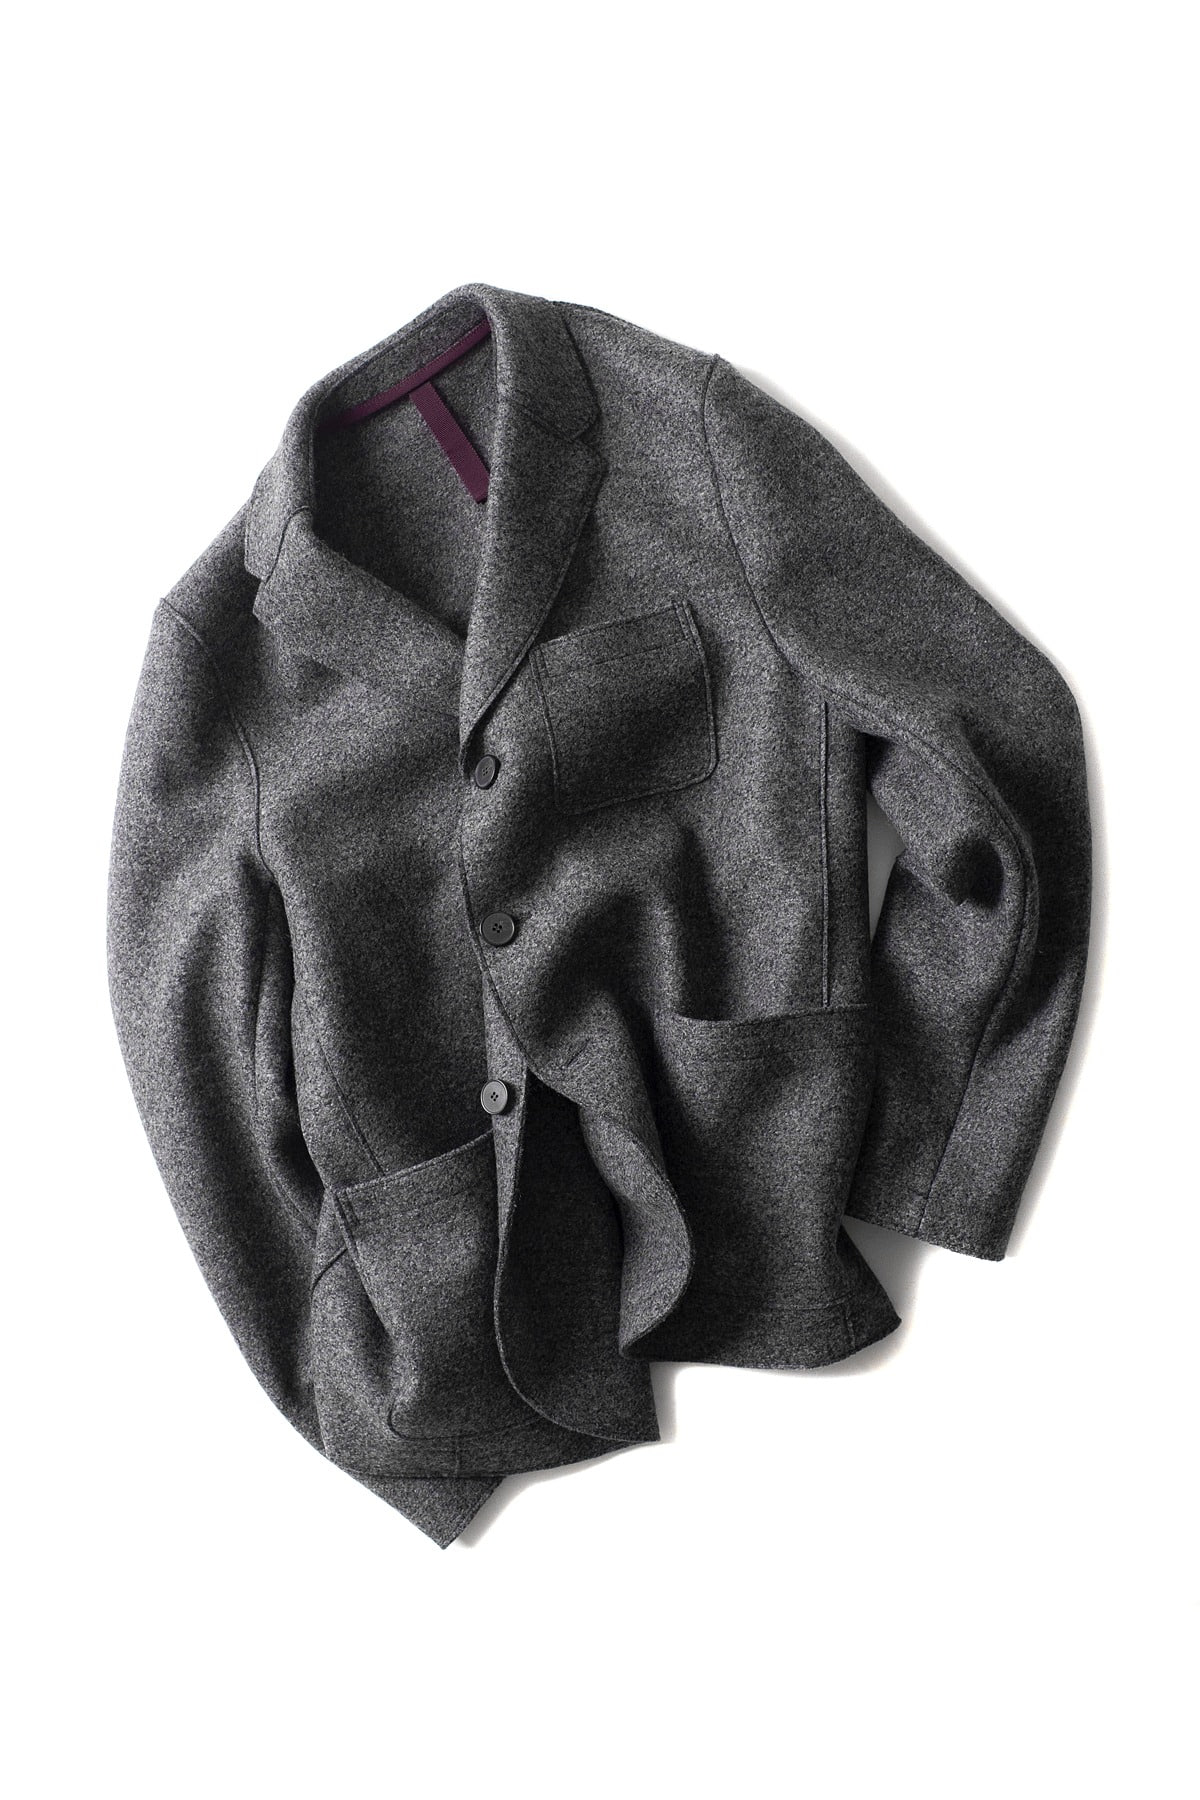 Harris Wharf London : 3.B Boxy Pressed Wool Jacket (Charcoal)